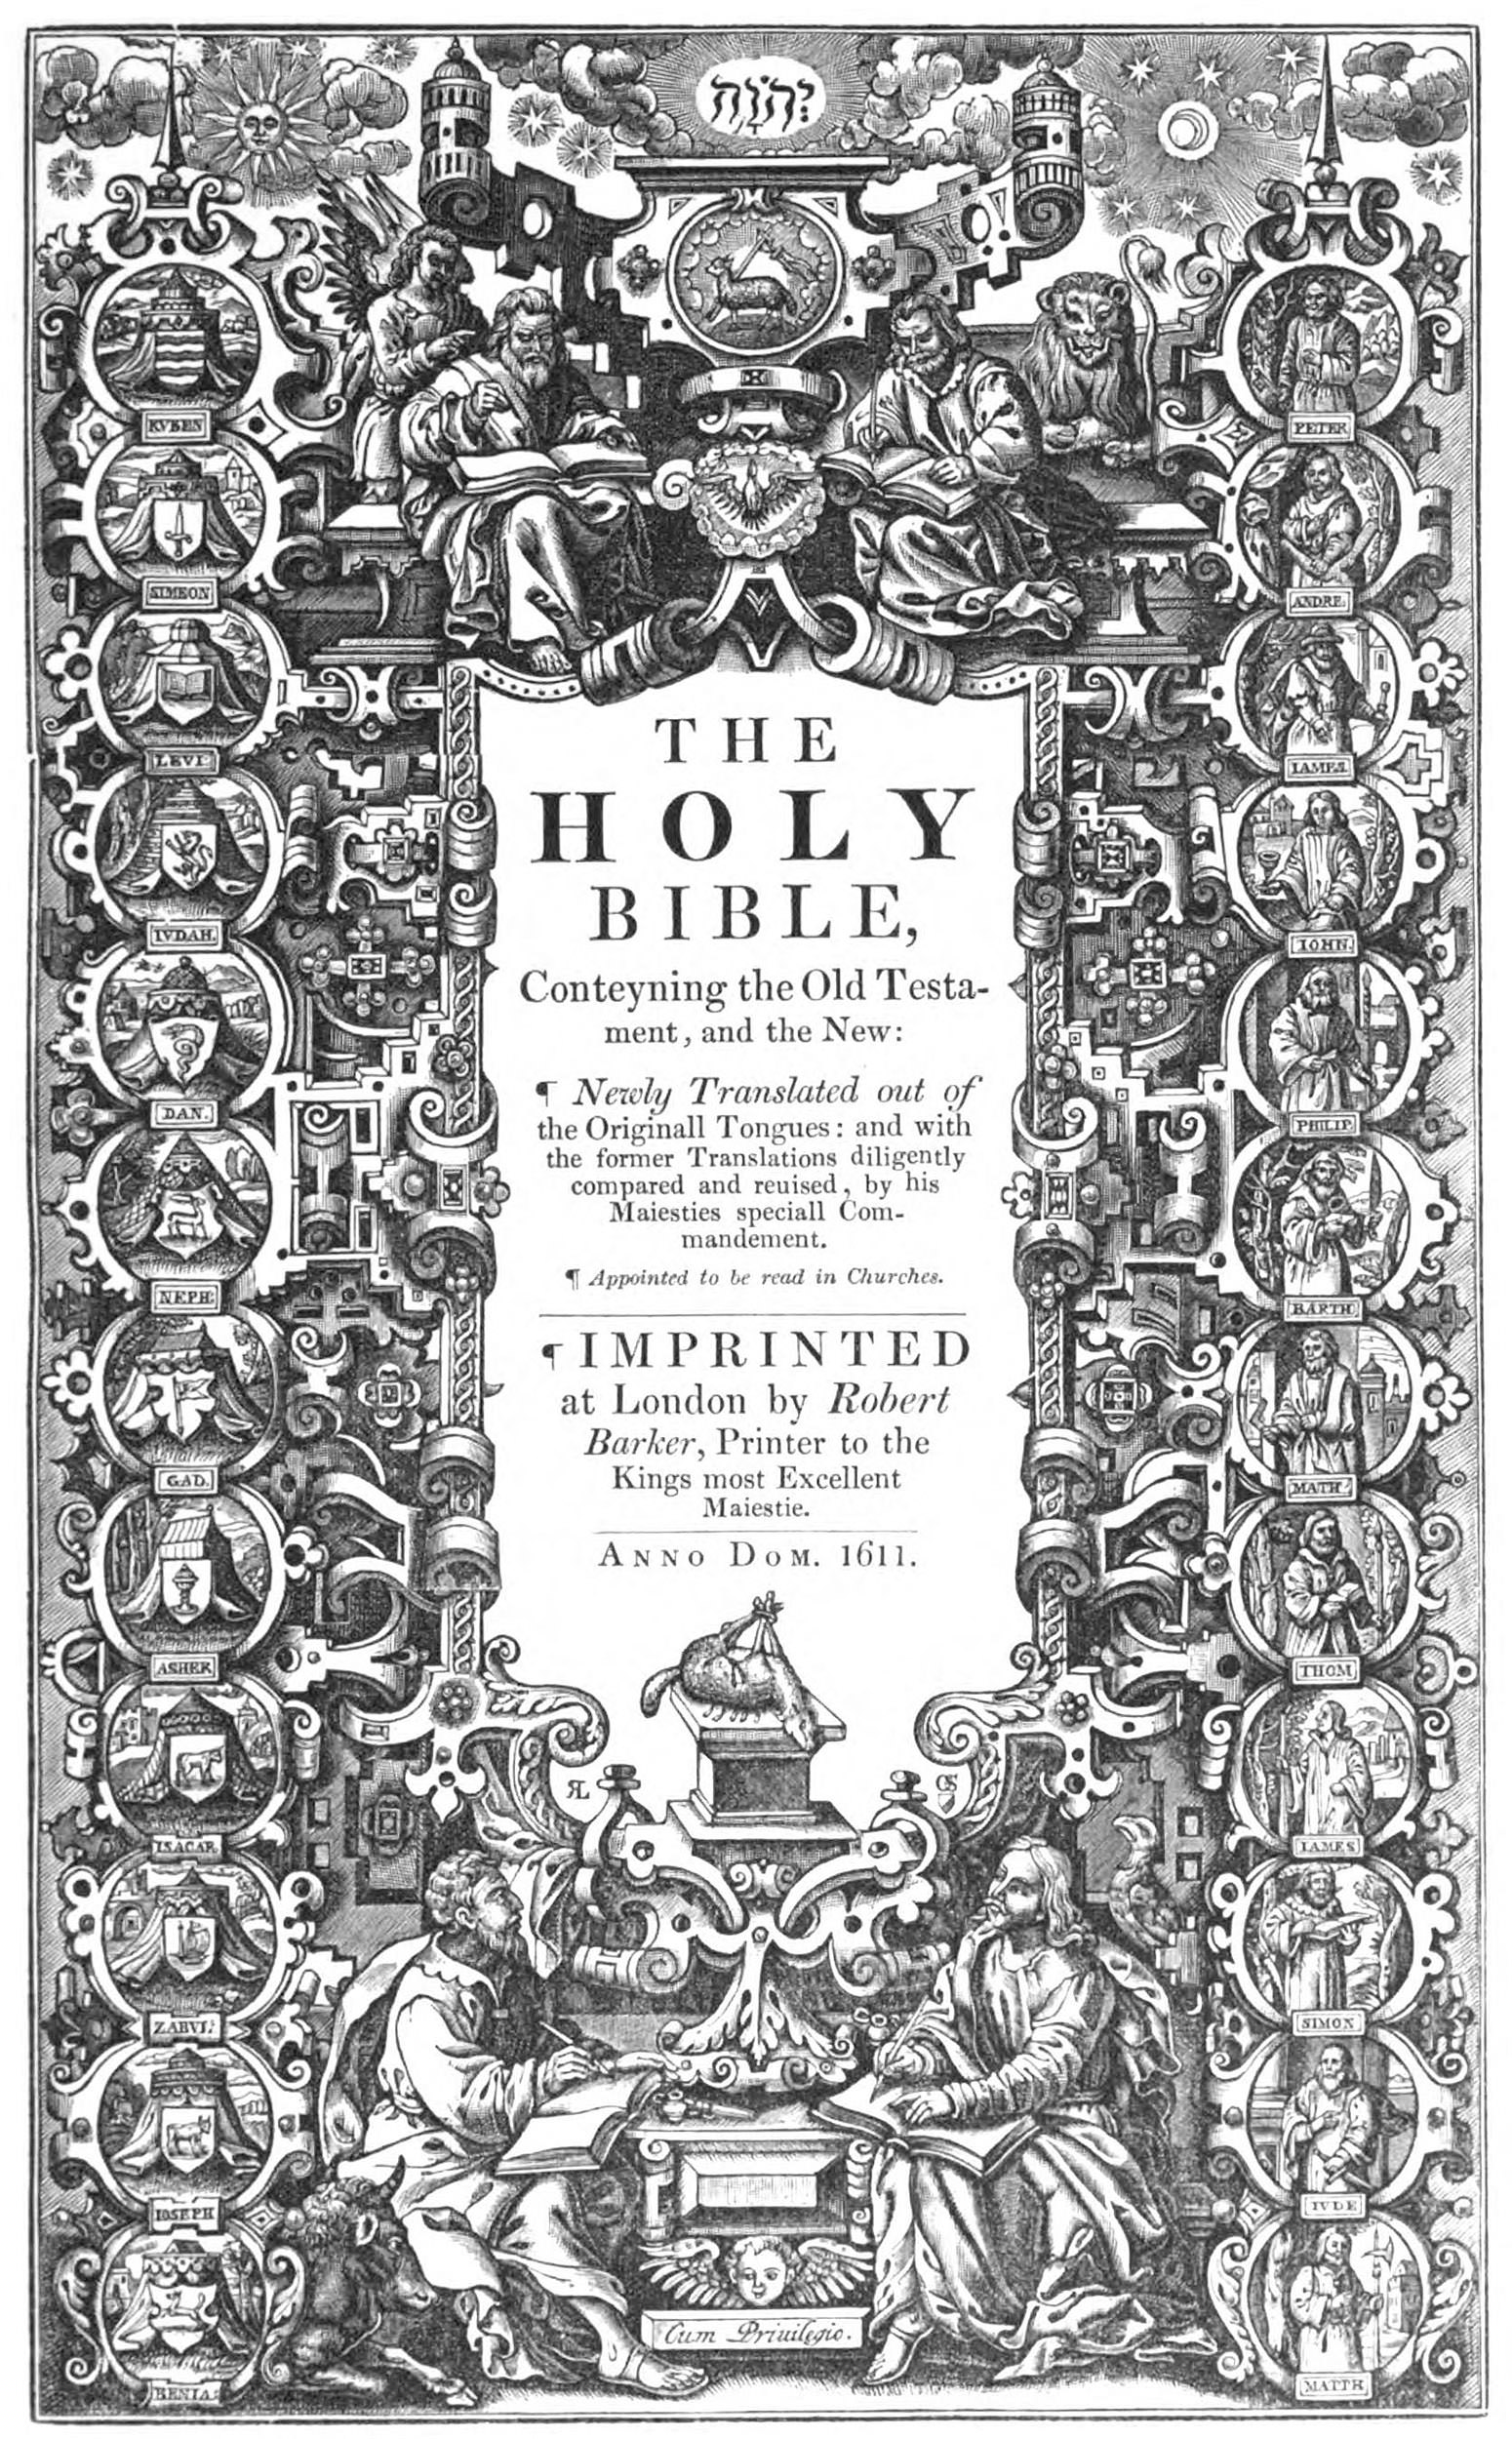 the life of king james and the translation of the bible The translators of the king james bible av1611 a brief summary at the hampton court conference, convened by king james i in 1603, john reynolds, the head of the puritan church in england, proposed a new english translation of the scriptures that would unite the churches and the people of england.